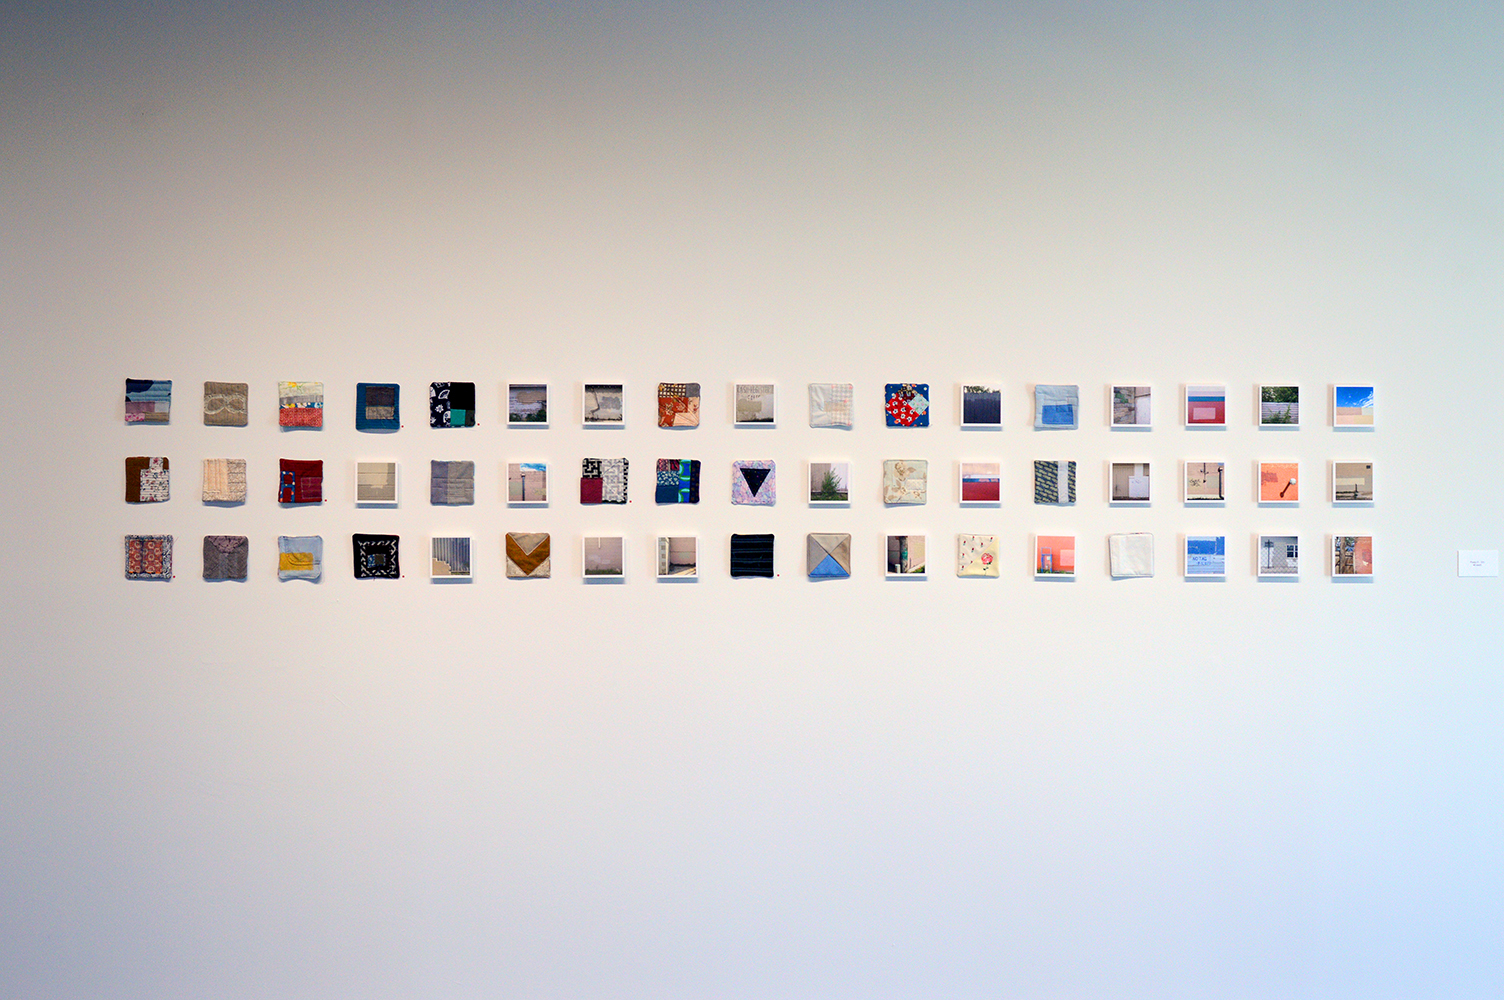 Posts by randall barnes (installation view)